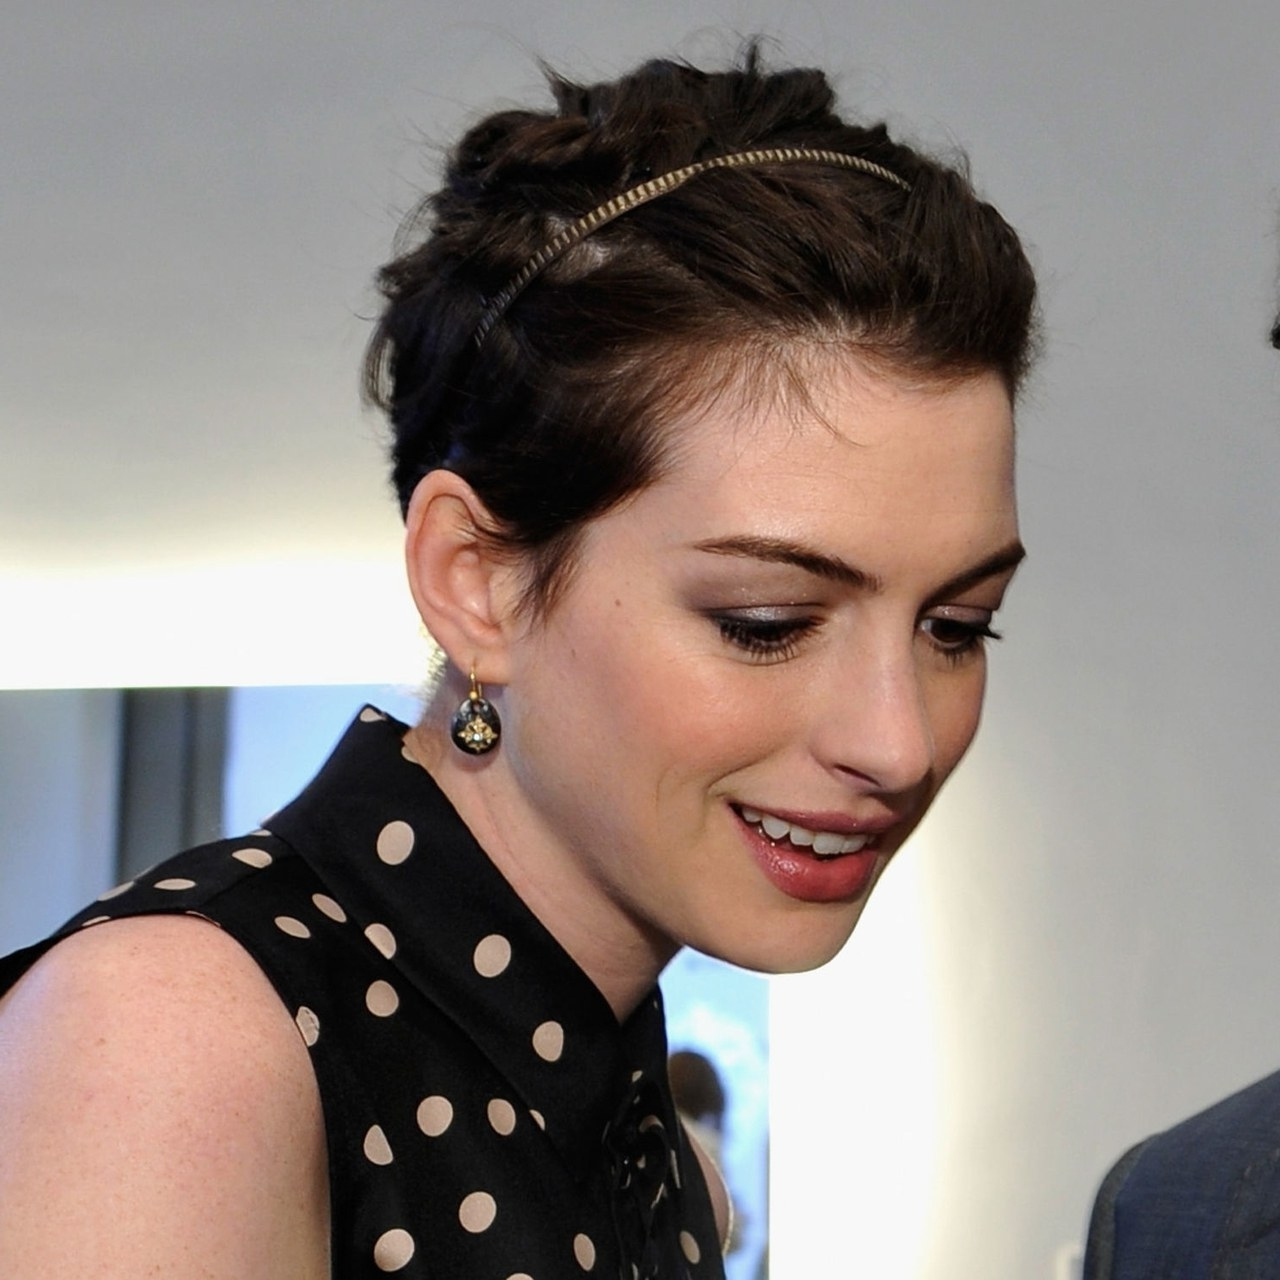 Anne Hathaway Uses A Headband To Create A Cute Hairstyle For Her Pertaining To Latest Pixie Hairstyles With Headband (View 4 of 15)